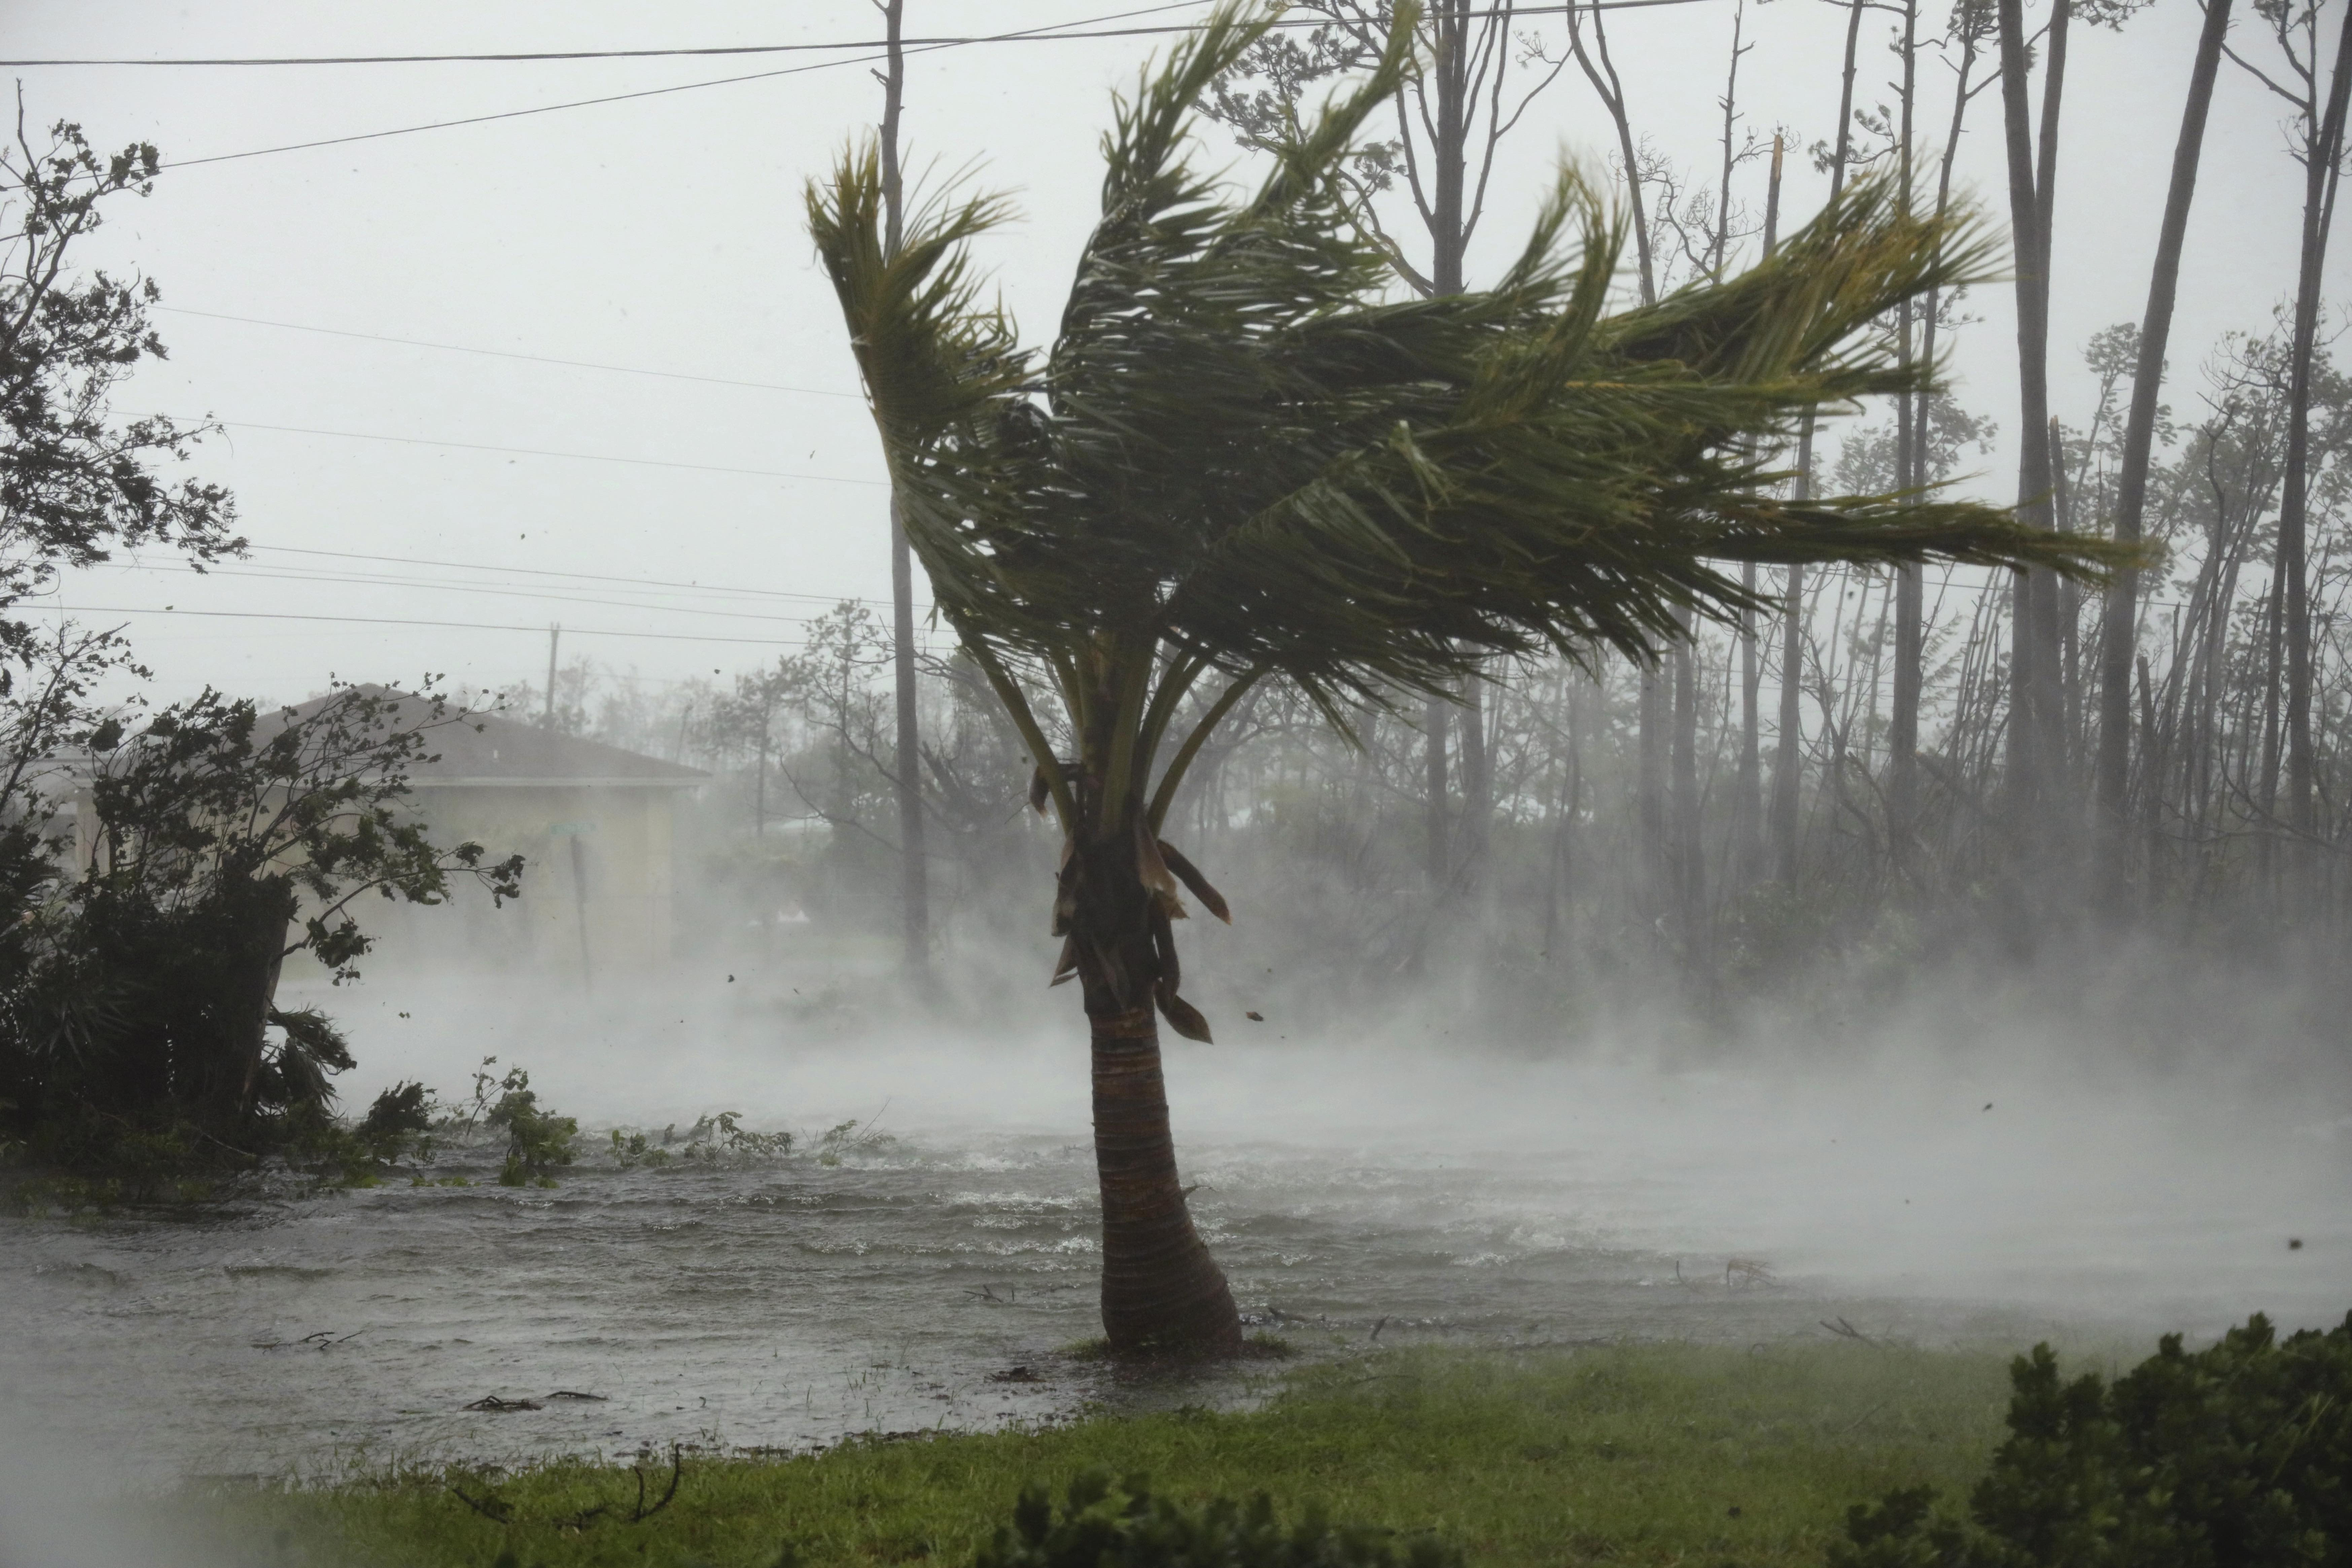 Winds from Hurricane Dorian whip through a neighbourhood in Freeport, Grand Bahama Monday Sept 2, 2019. Hurricane Dorian weakened in strength to a category 4 storm as it passed over the island of Grand Bahama in the Northwest Bahamas.